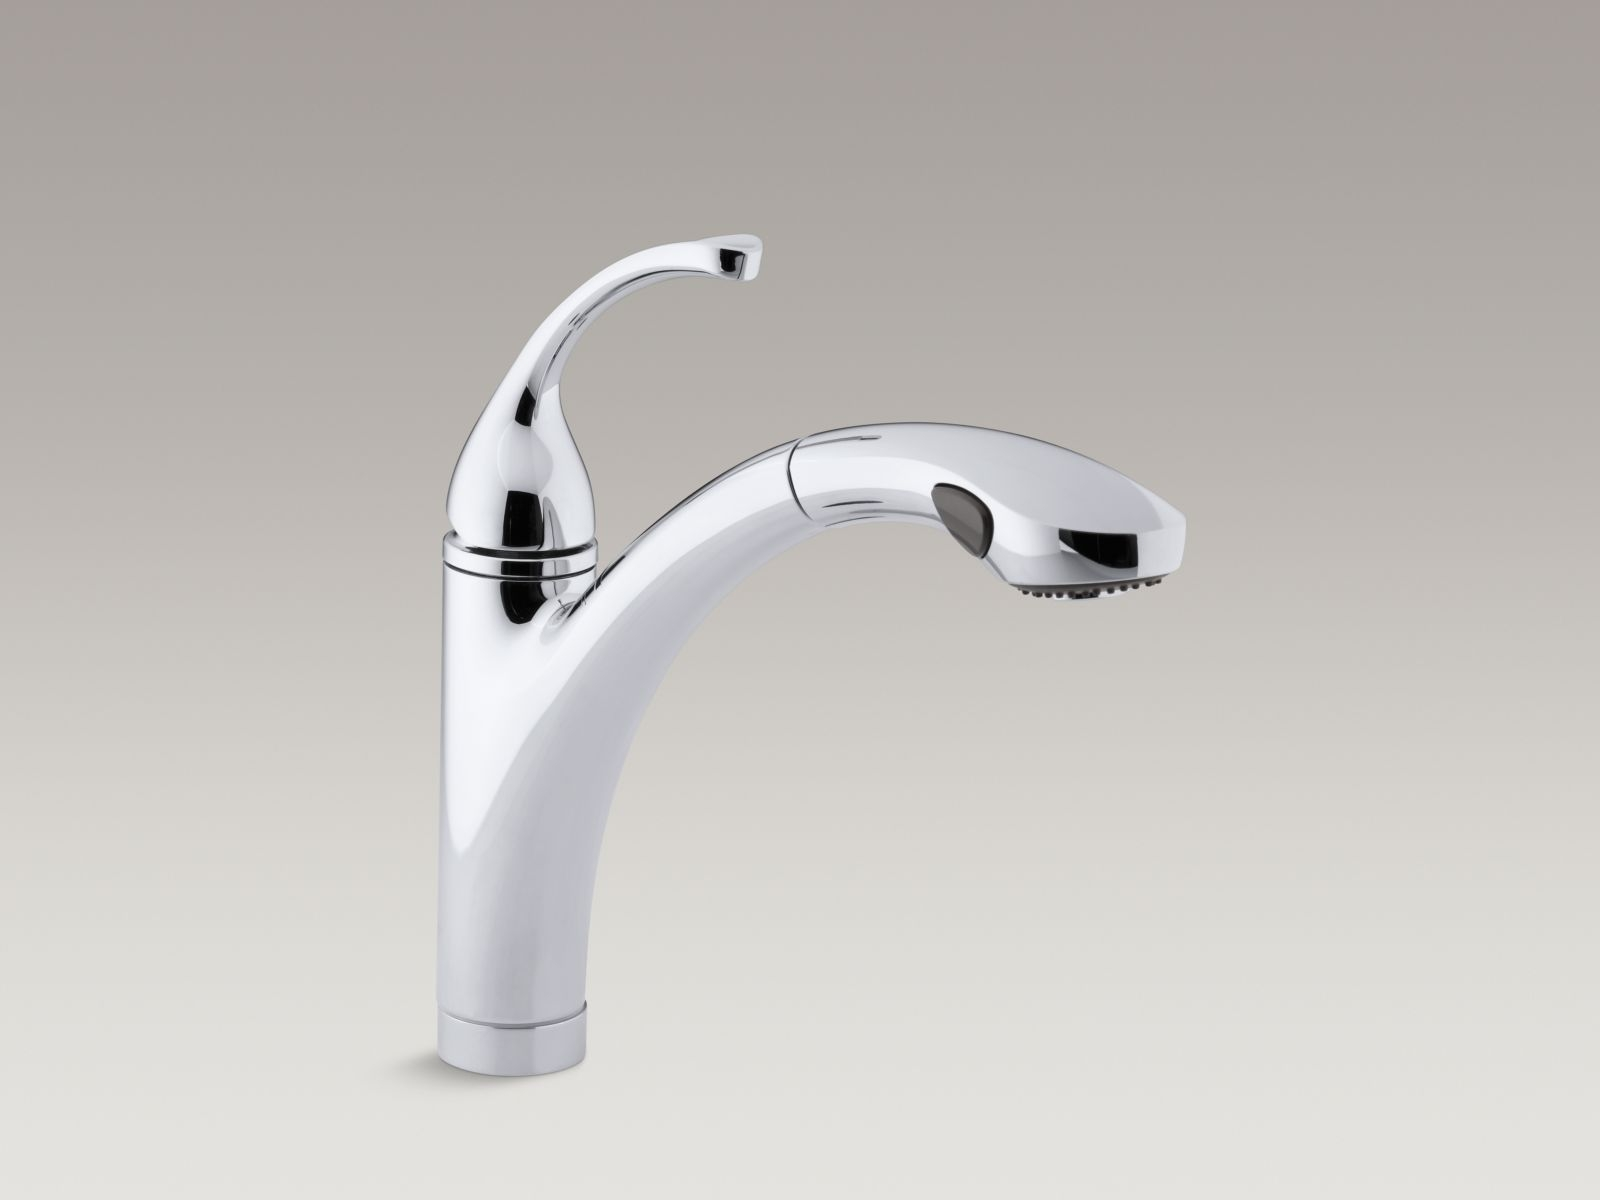 kohler fairfax pullout spray kitchen faucet kohler fairfax pullout spray kitchen faucet buyplumbing category pull out spout 1600 x 1200